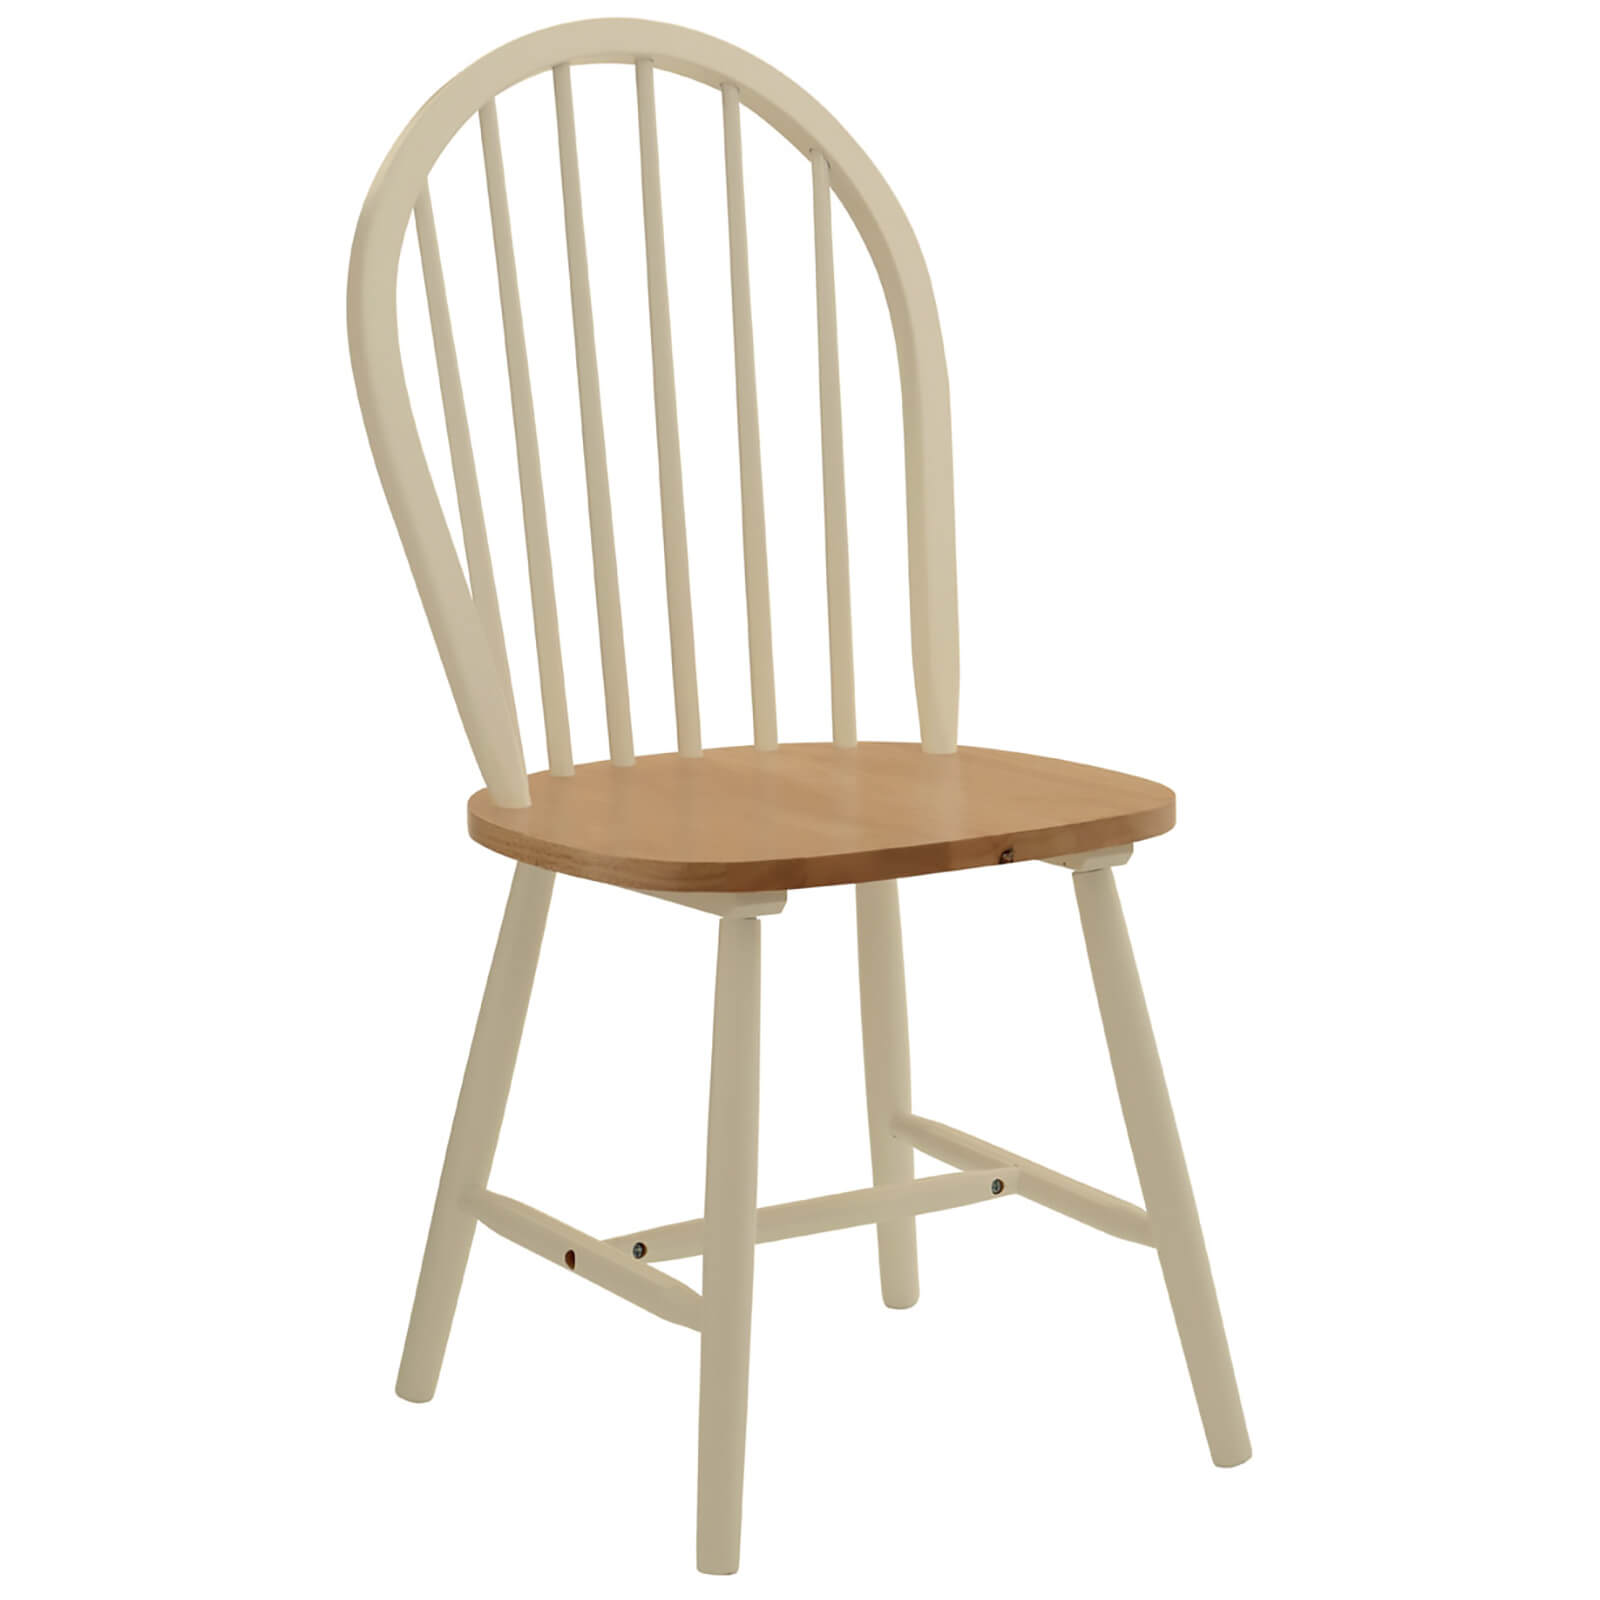 Fifty Five South Vermont Oakland Chair (5 Piece) - Oak/Ivory